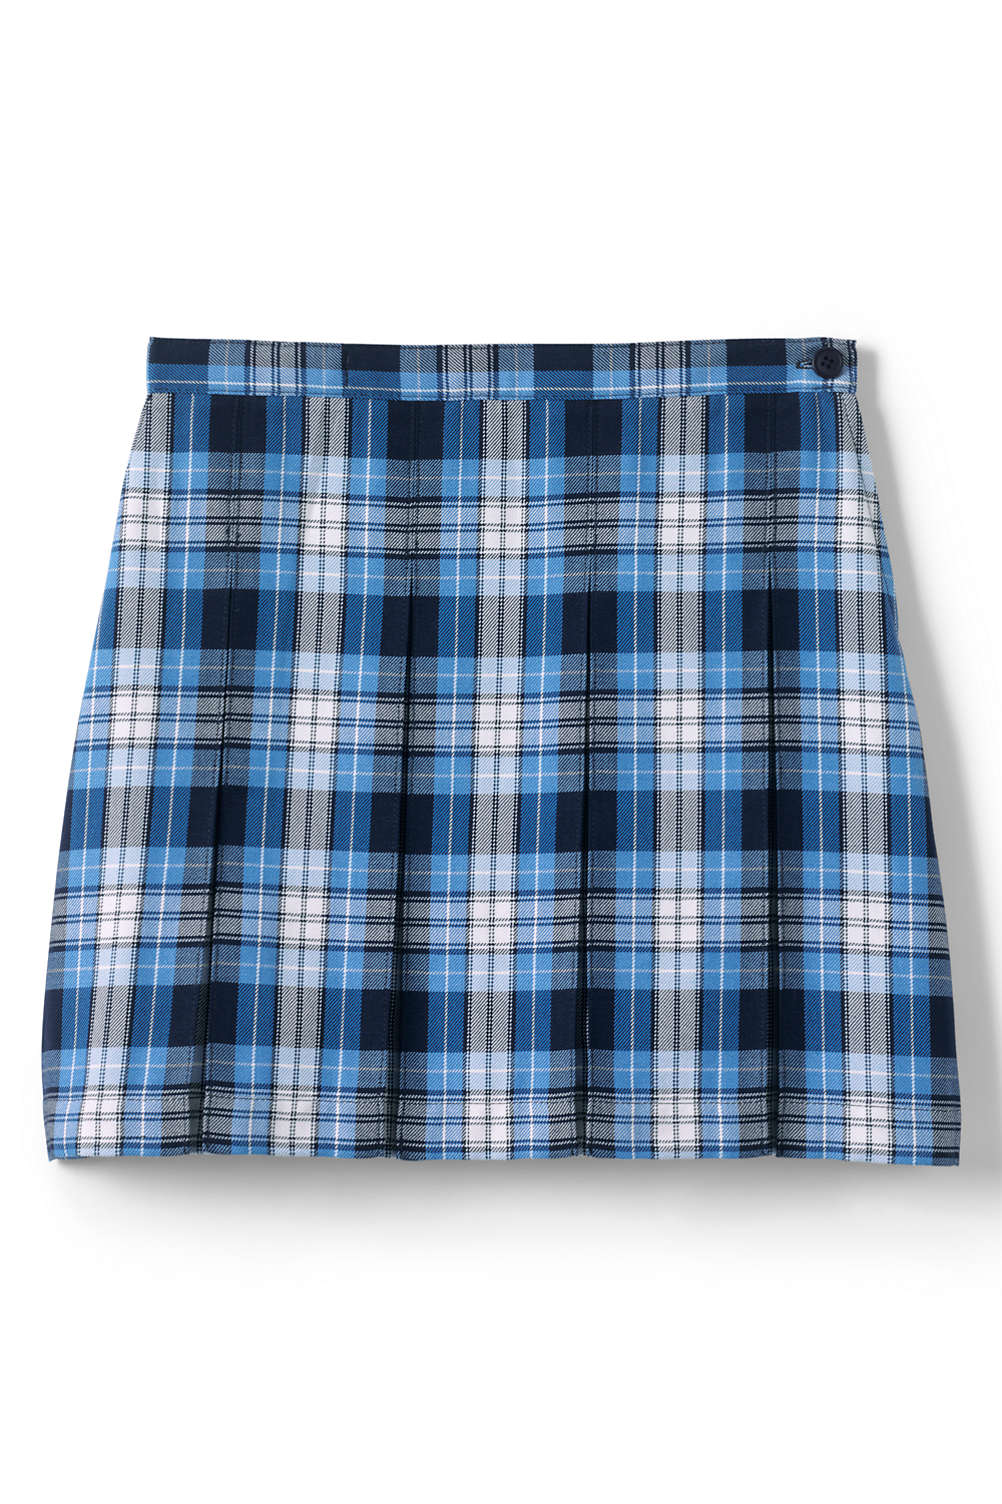 047be8216d School Uniform Plaid Box Pleat Skirt Top of the Knee from Lands' End